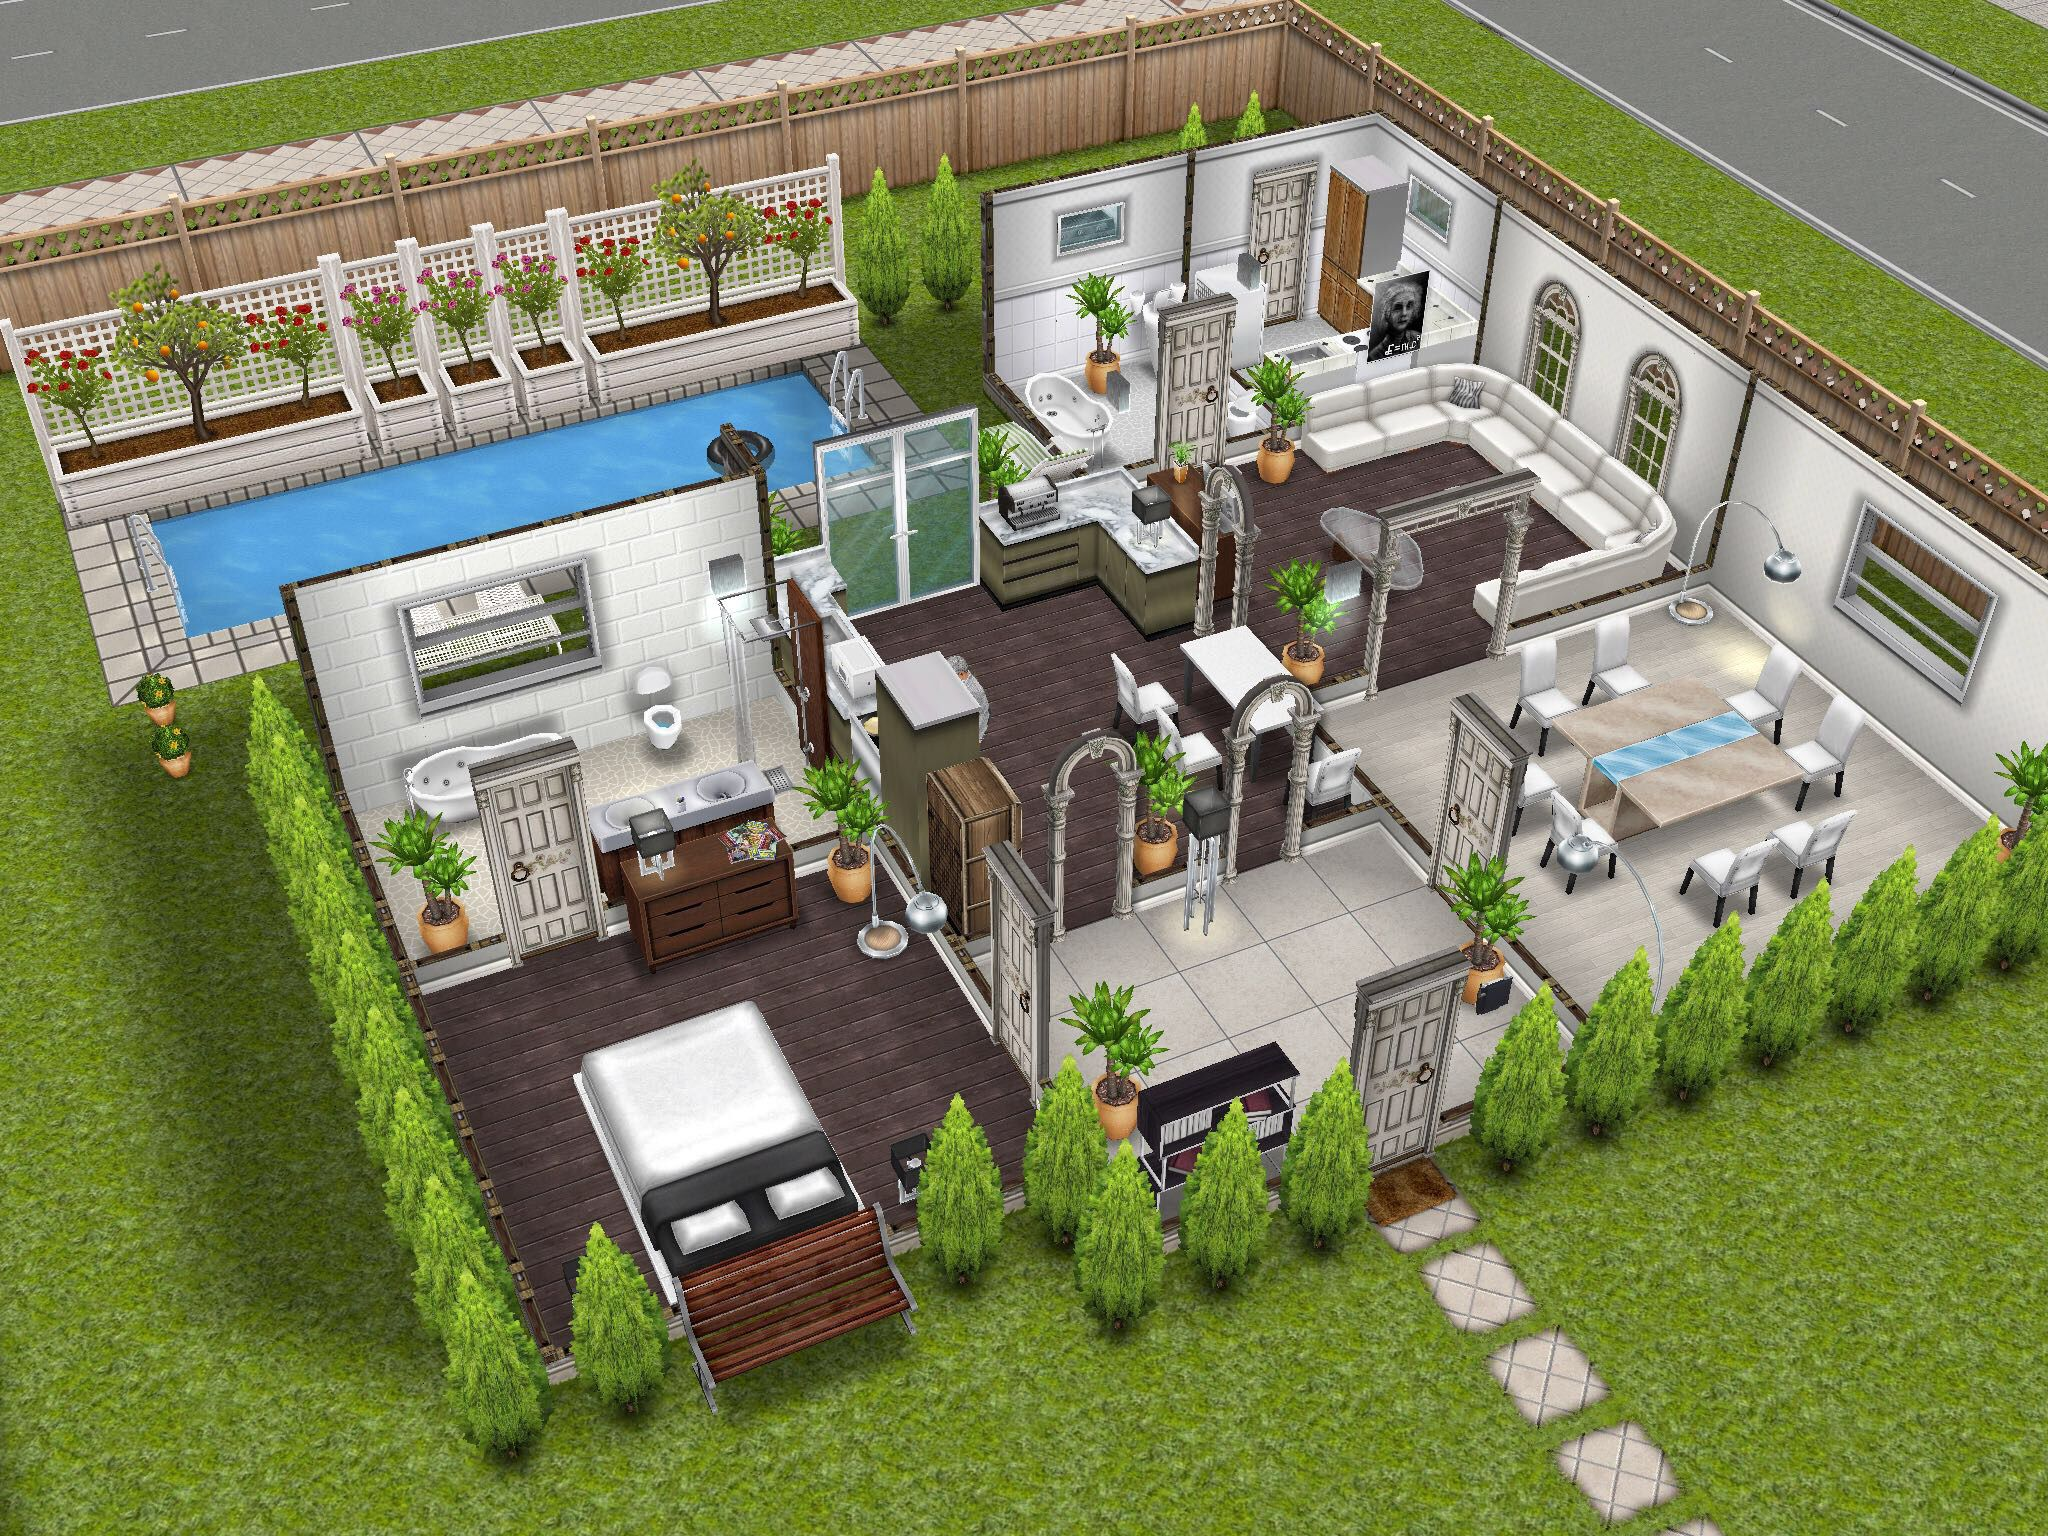 House design collection -  Thesimsfreeplay Simsfreeplay Thesims Housedesign Designedbyjade Xx